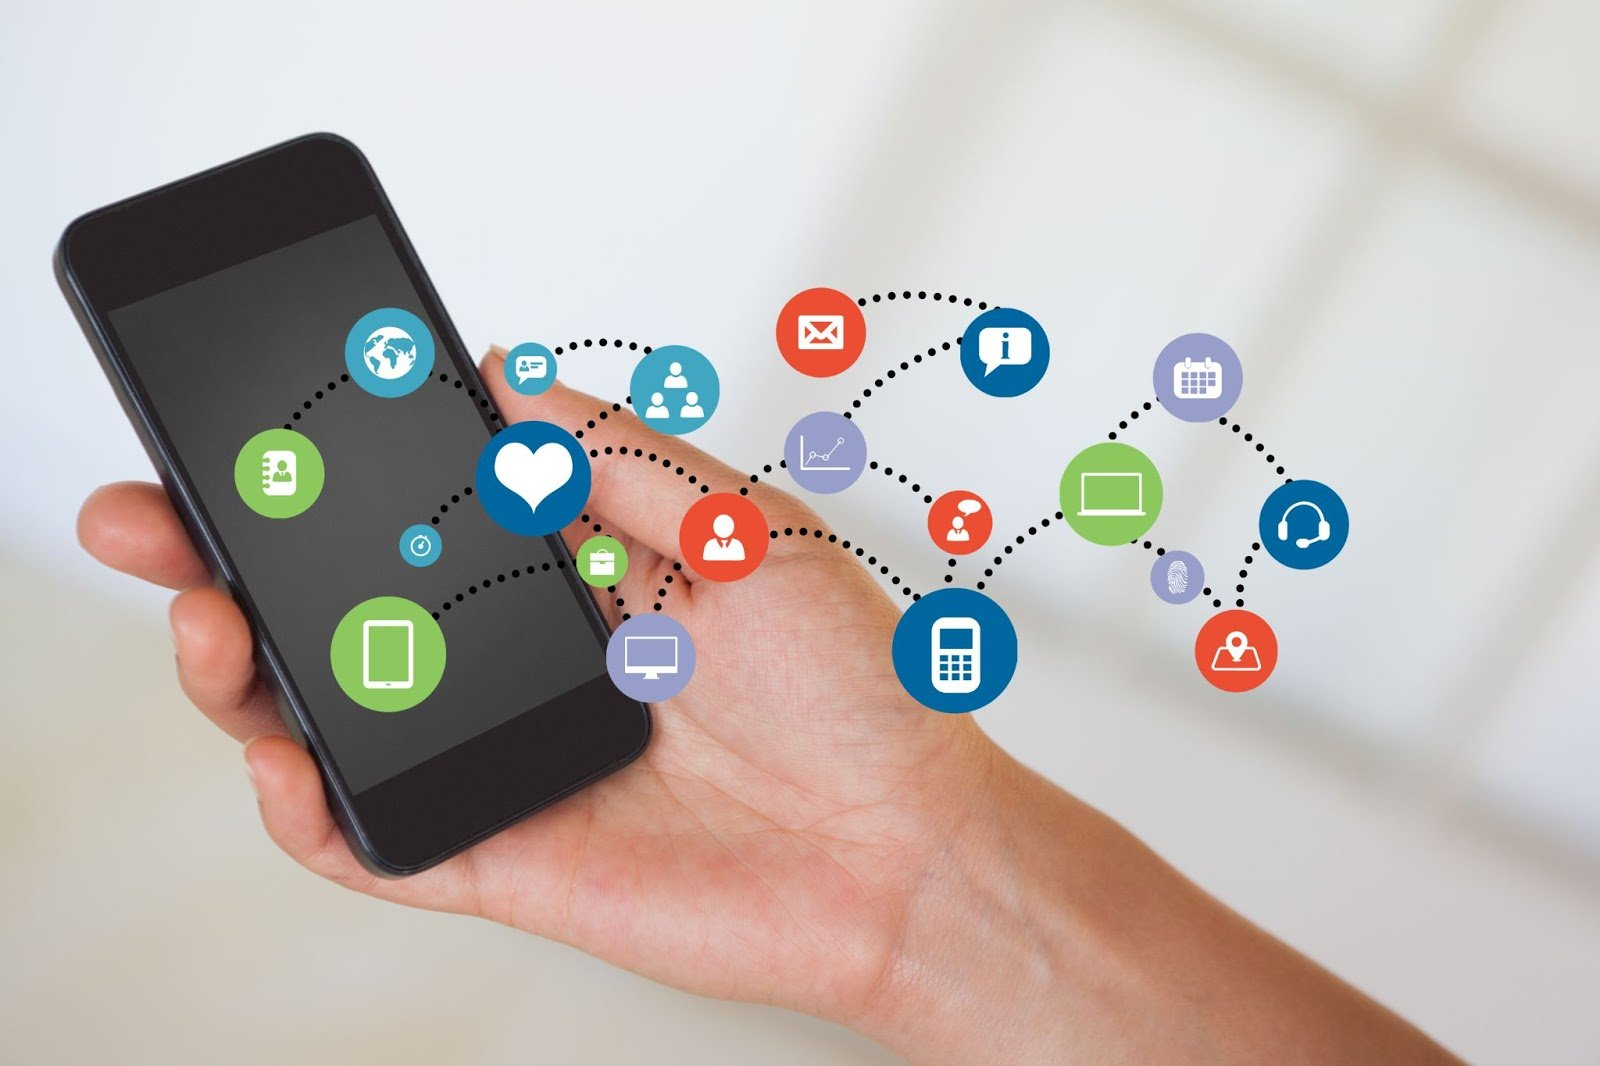 10 Ways to Build a Secure Mobile App